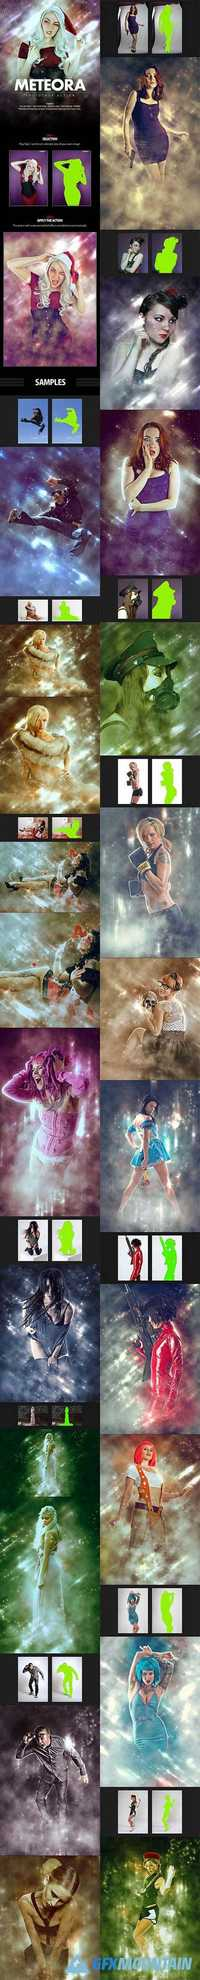 Glitters Photoshop Action - 19051771